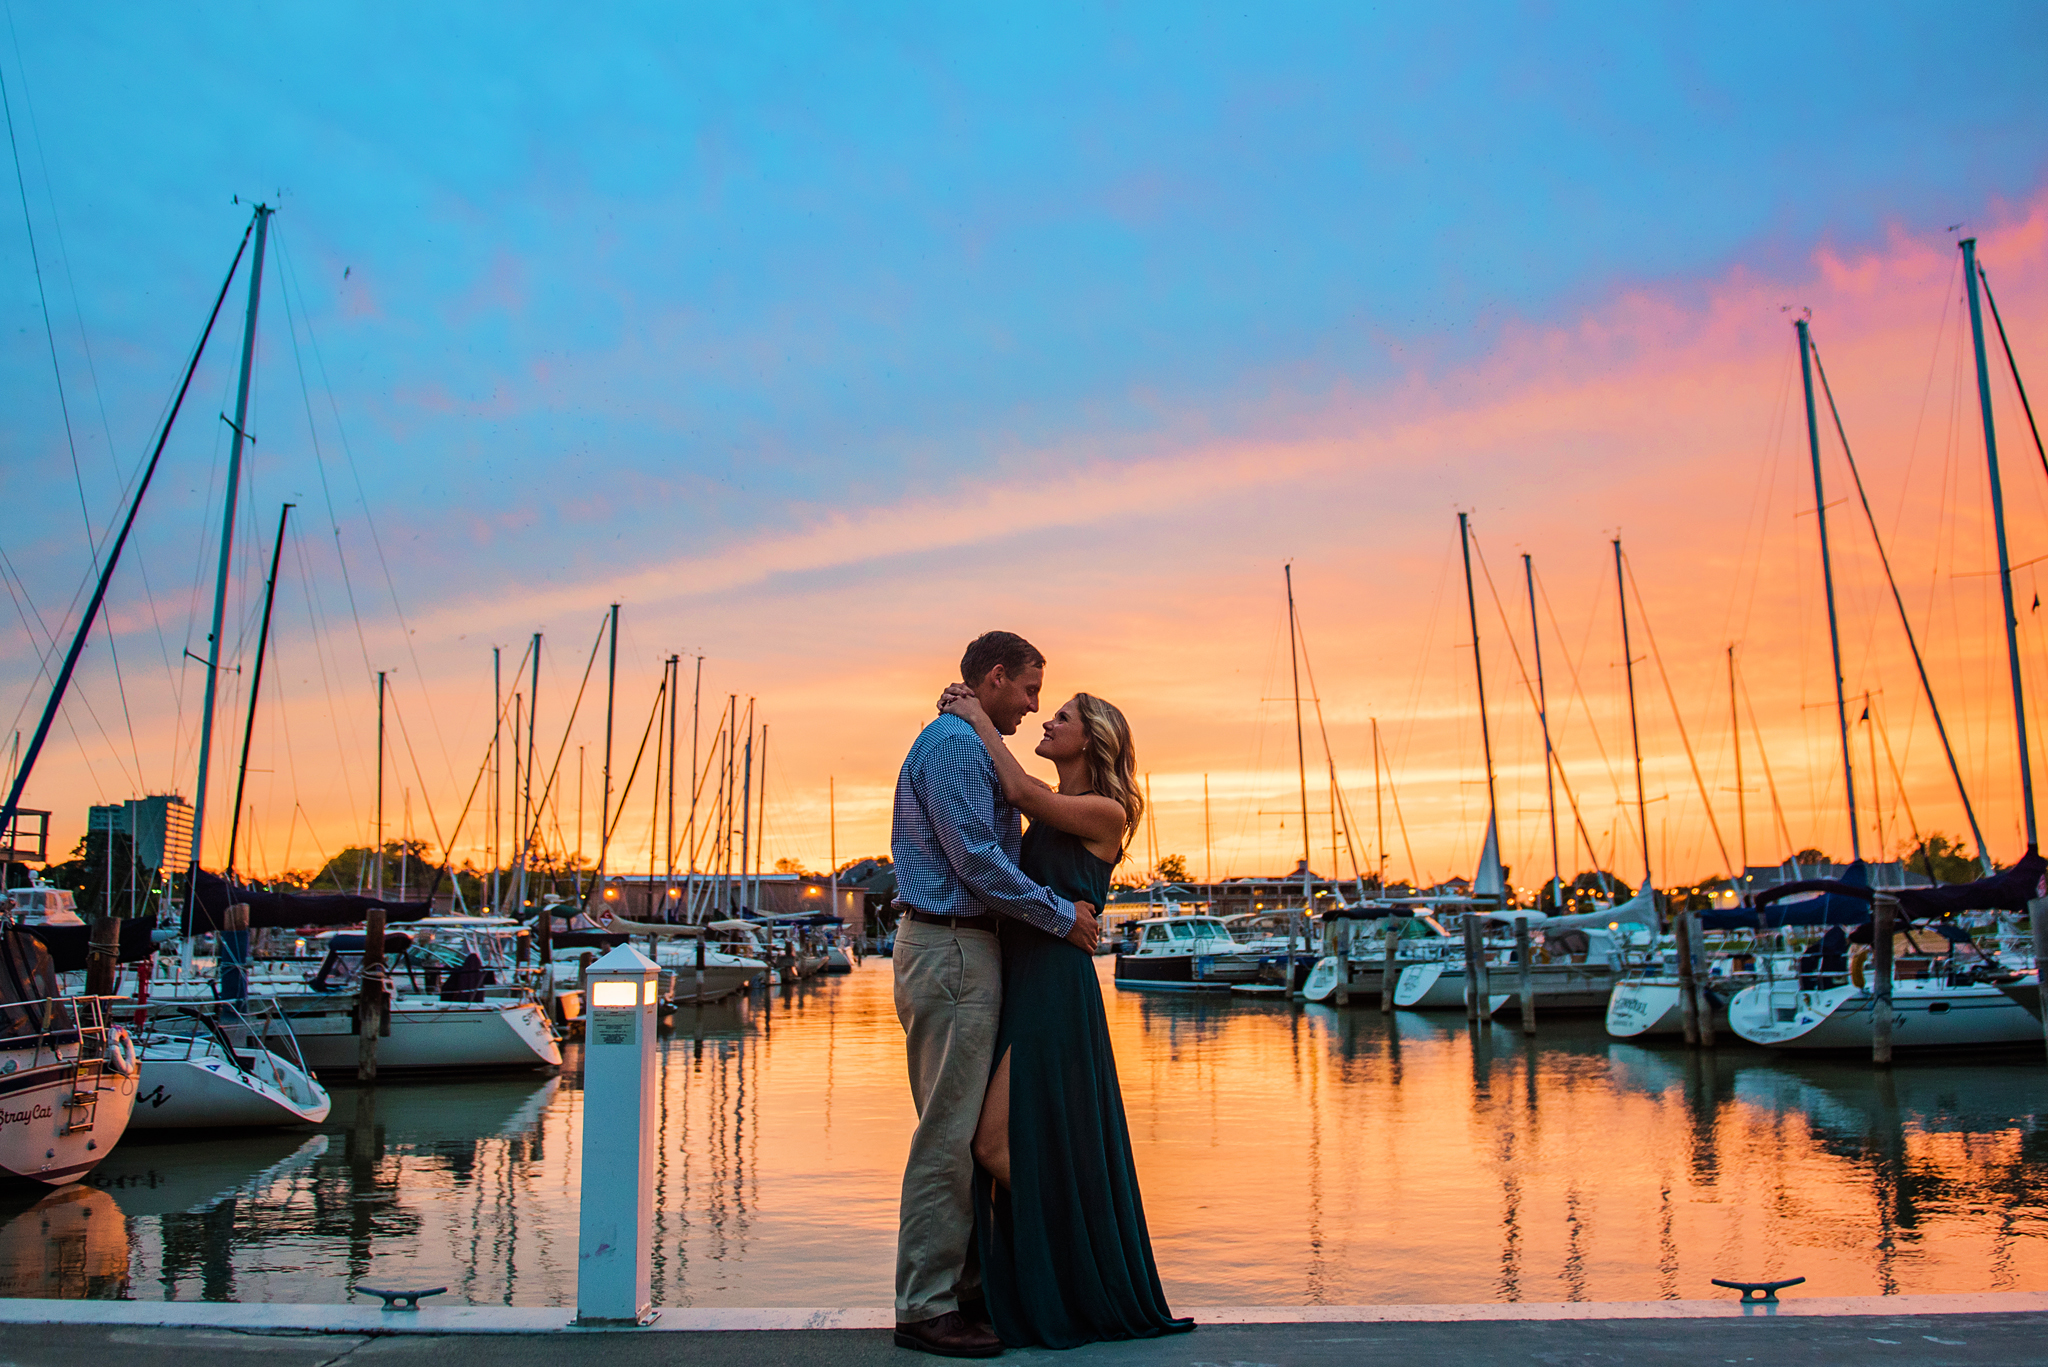 George_Eastman_House_Rochester_Yacht_Club_Rochester_Engagement_Session_JILL_STUDIO_Rochester_NY_Photographer_DSC_8323.jpg